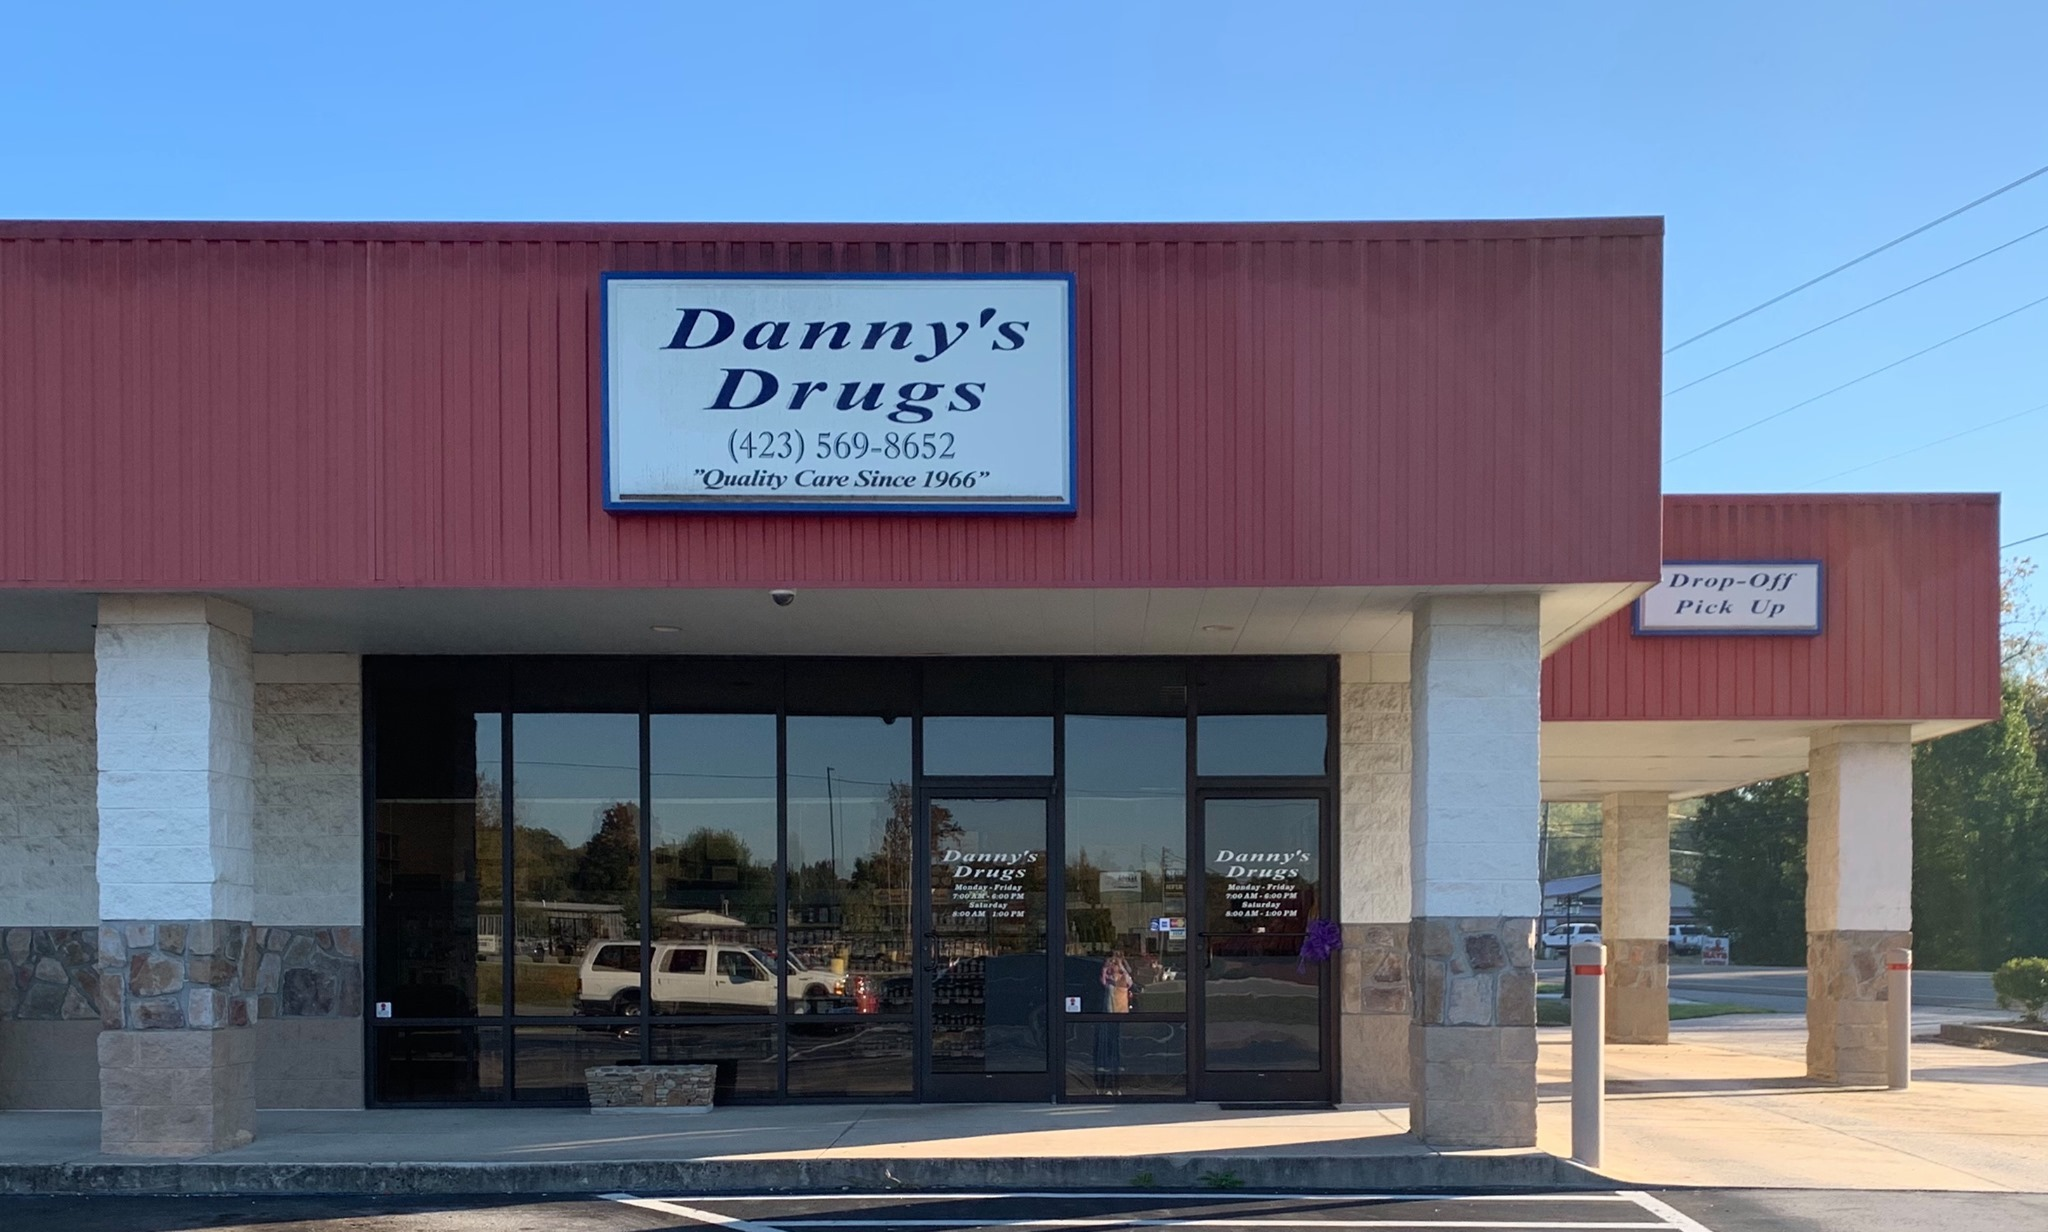 Danny's Drugs